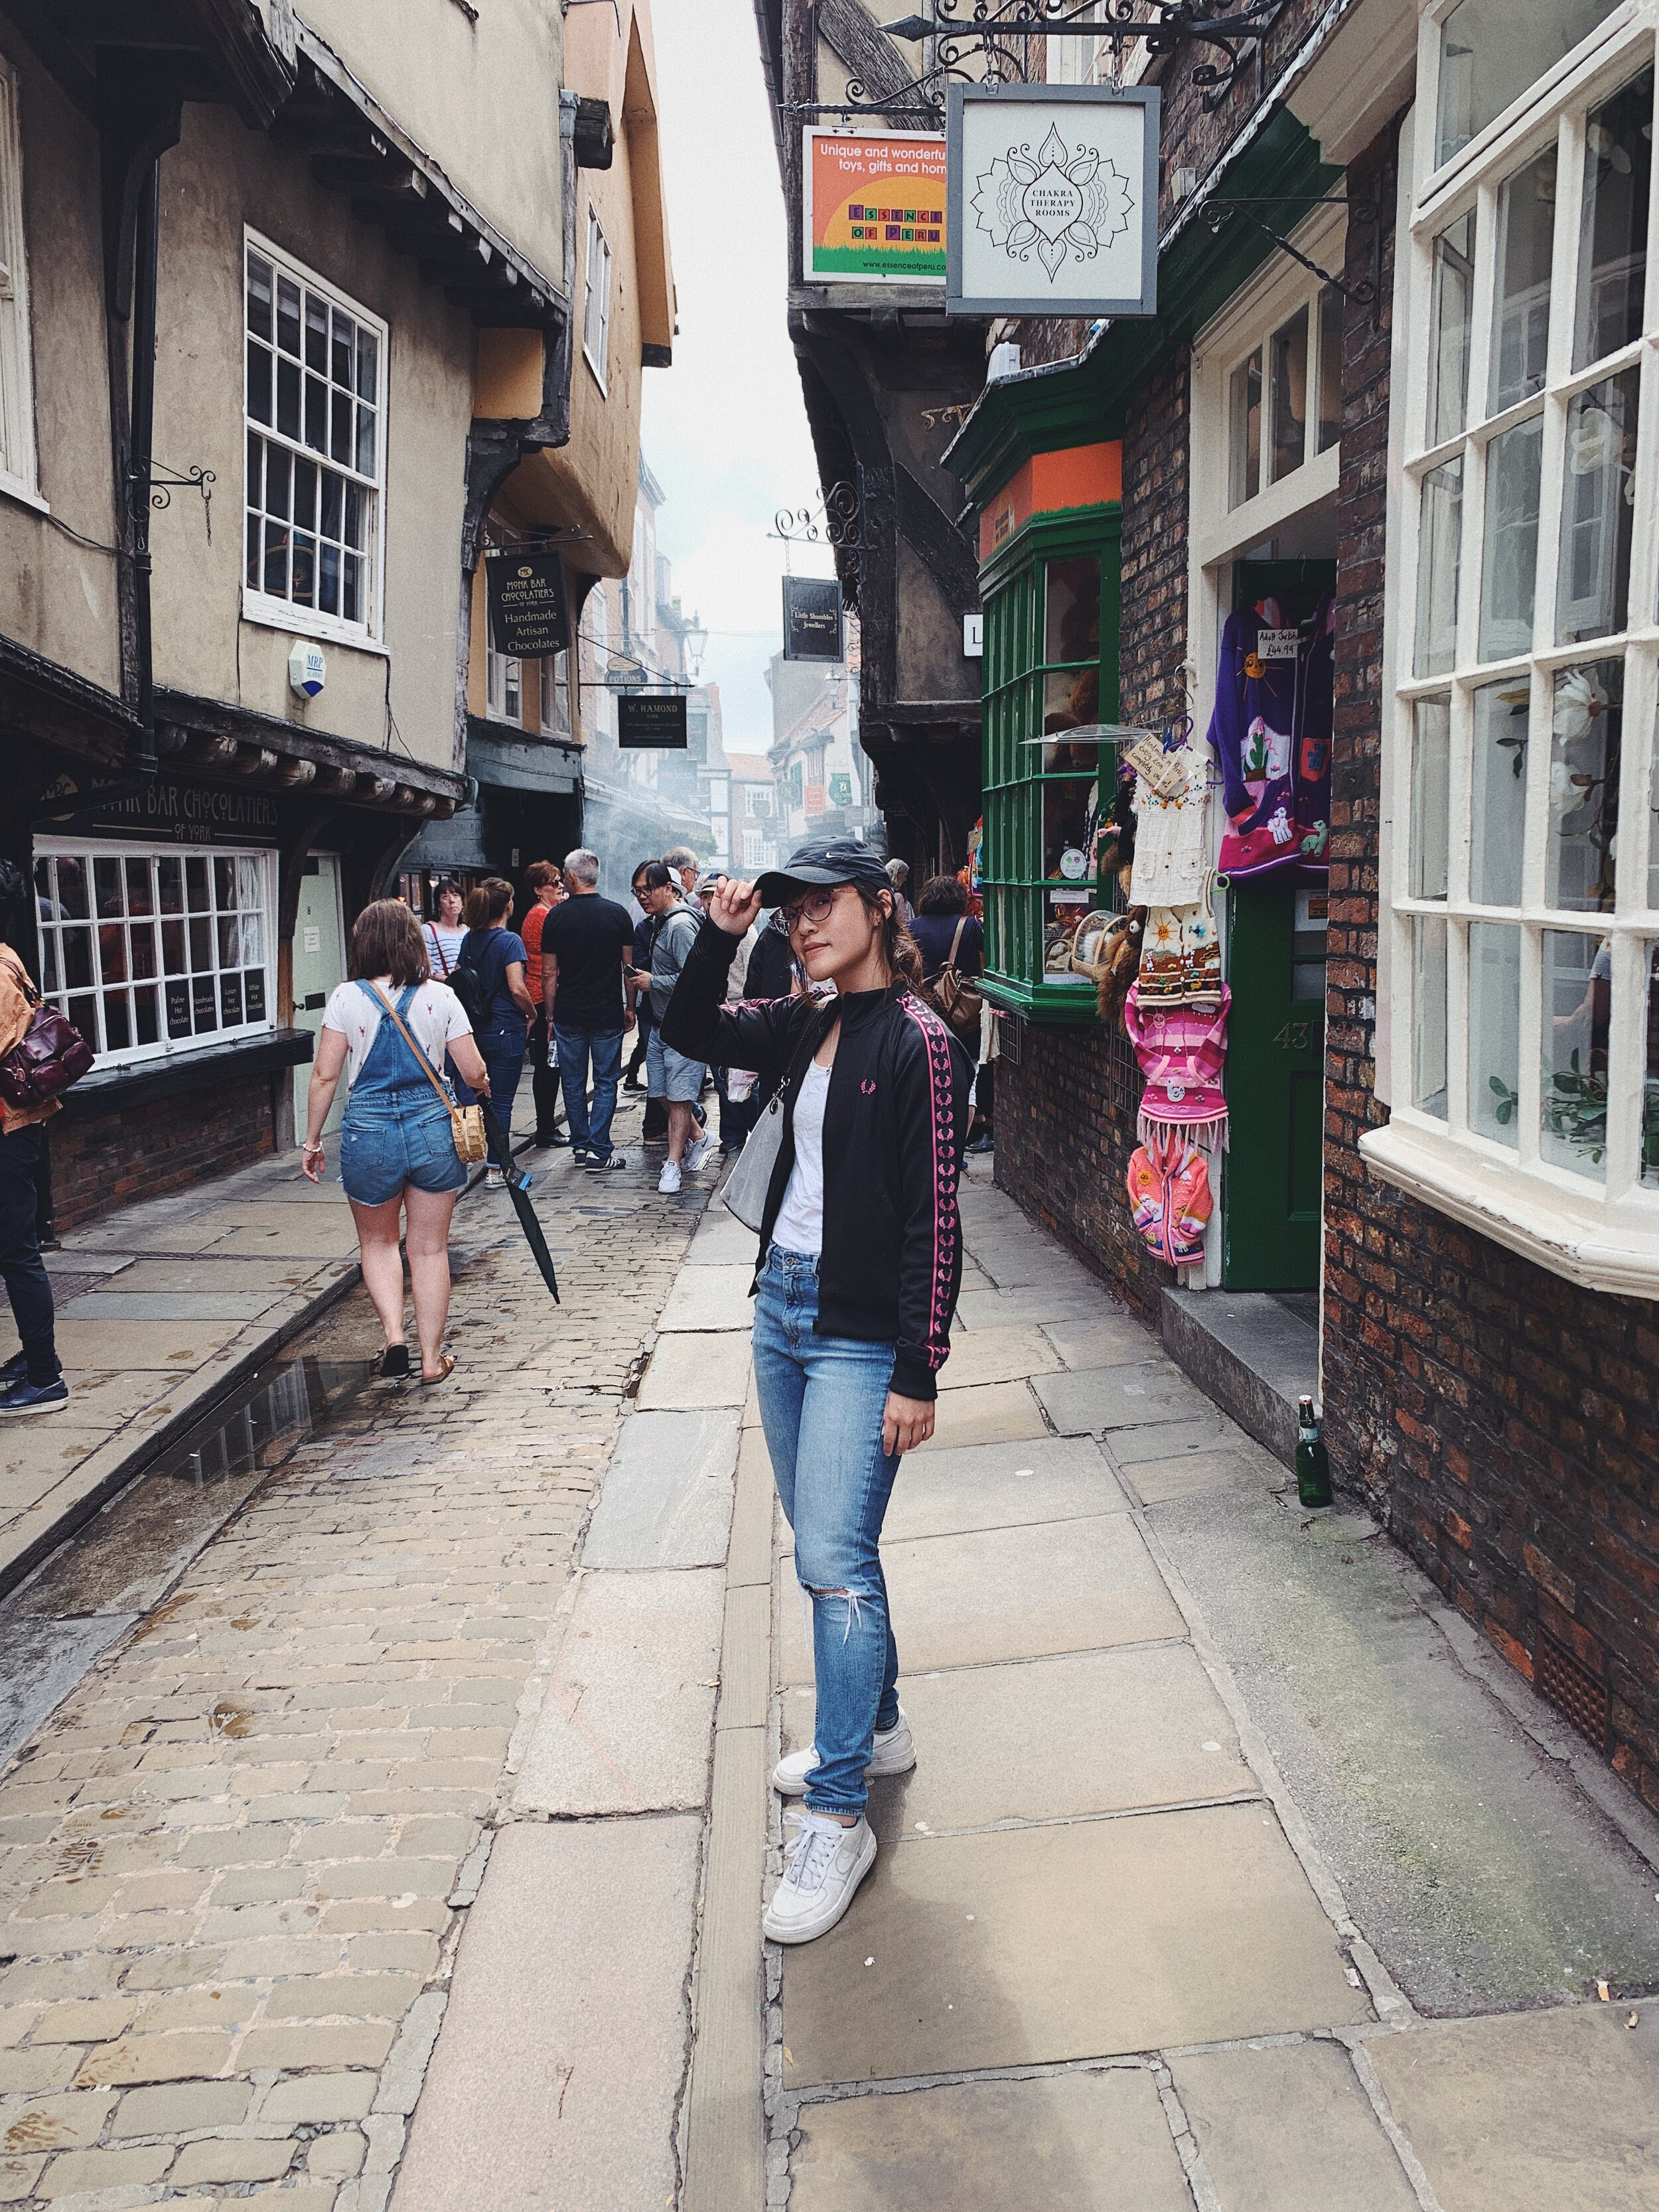 """At the place where J.K. Rowling got inspiration for Diagon Alley in the """"Harry Potter"""" stories"""